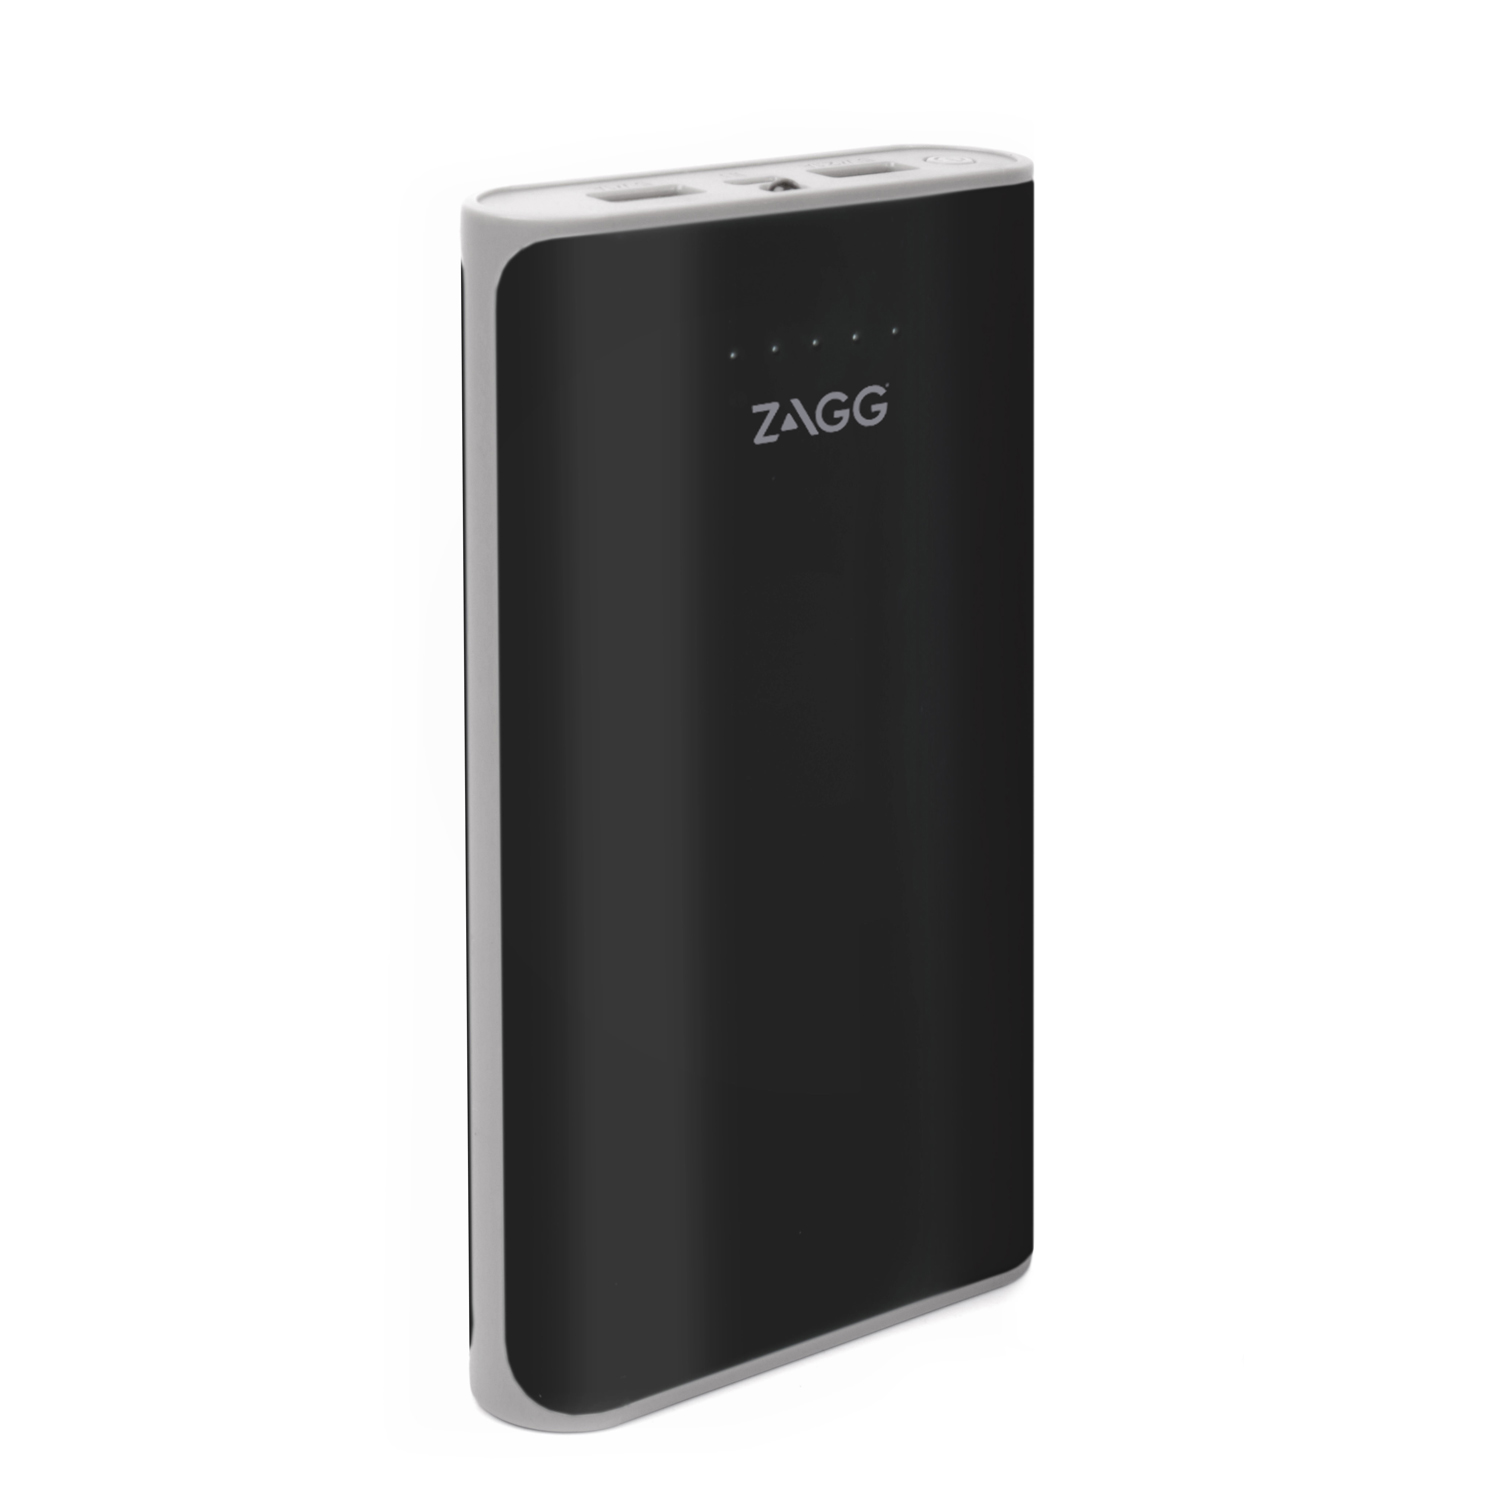 ZAGG Ignition 12 Black Portable Charger & Torch 12000mAh 2x USB @ 3.1A: Φορητή Μπαταρία για Smartphones, Κινητά, Tablets κ.λπ.